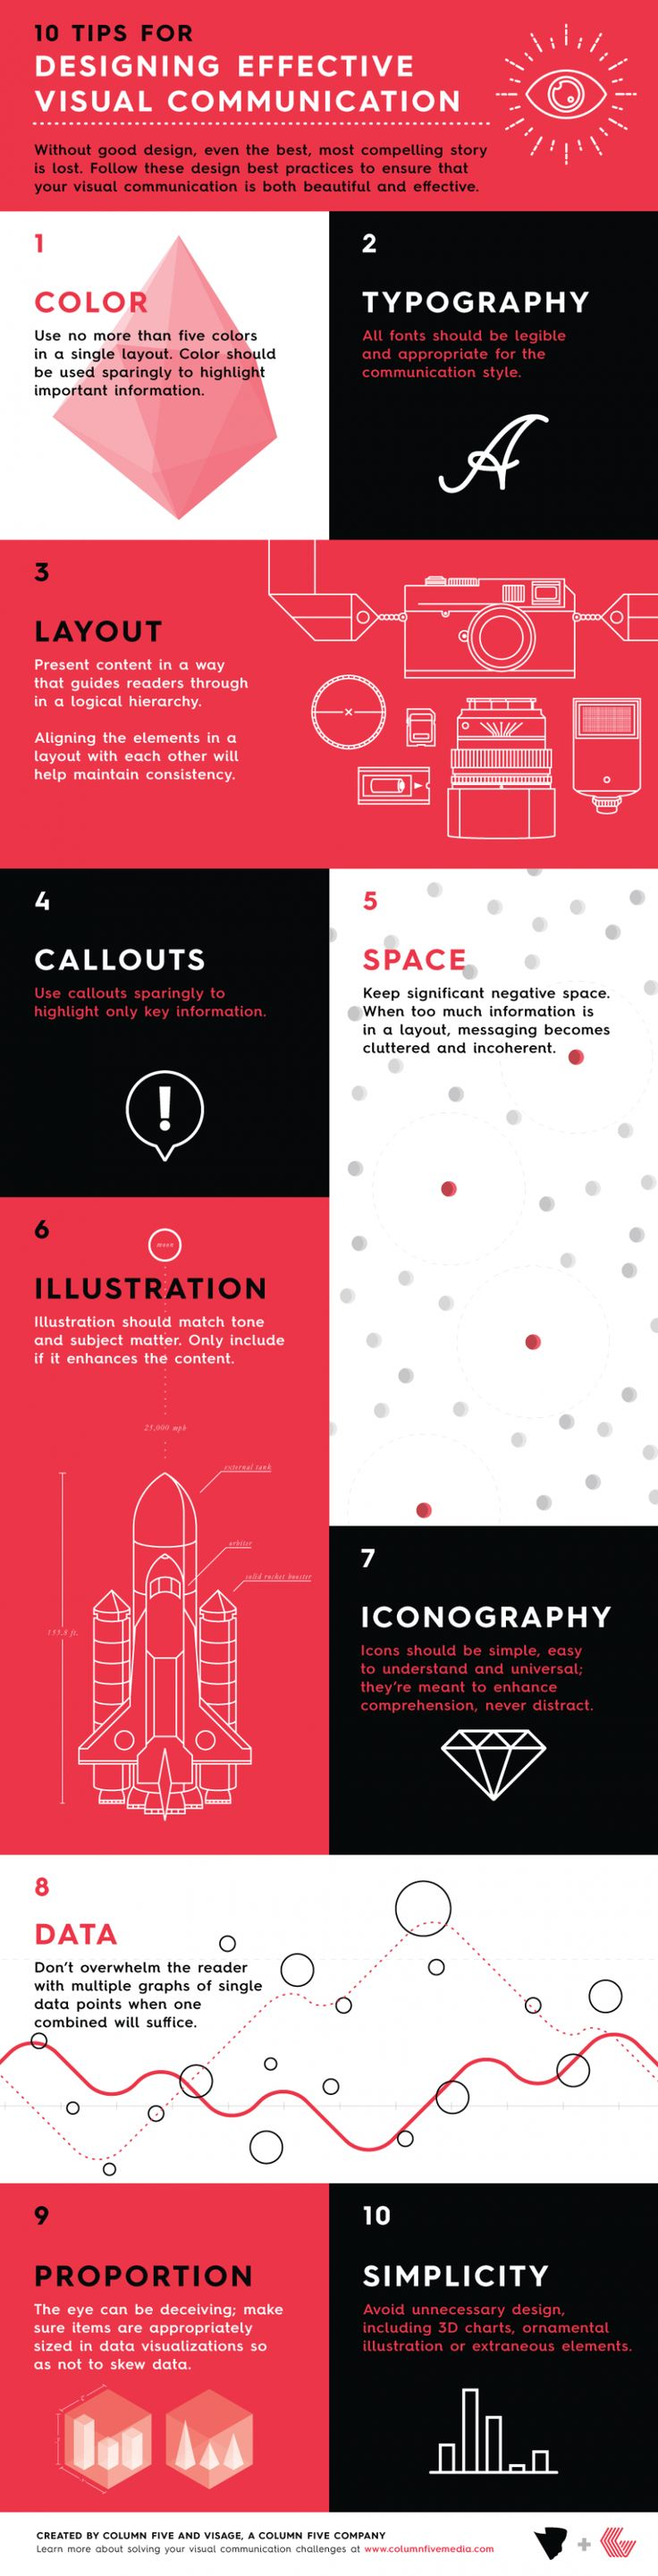 When it comes to designing, there should be a clear understanding between the work and the one experiencing it. Whatever your message you're trying to convey should be made clear and be understood by the viewer, it's a two-way process – and this is called visual communication. #Design